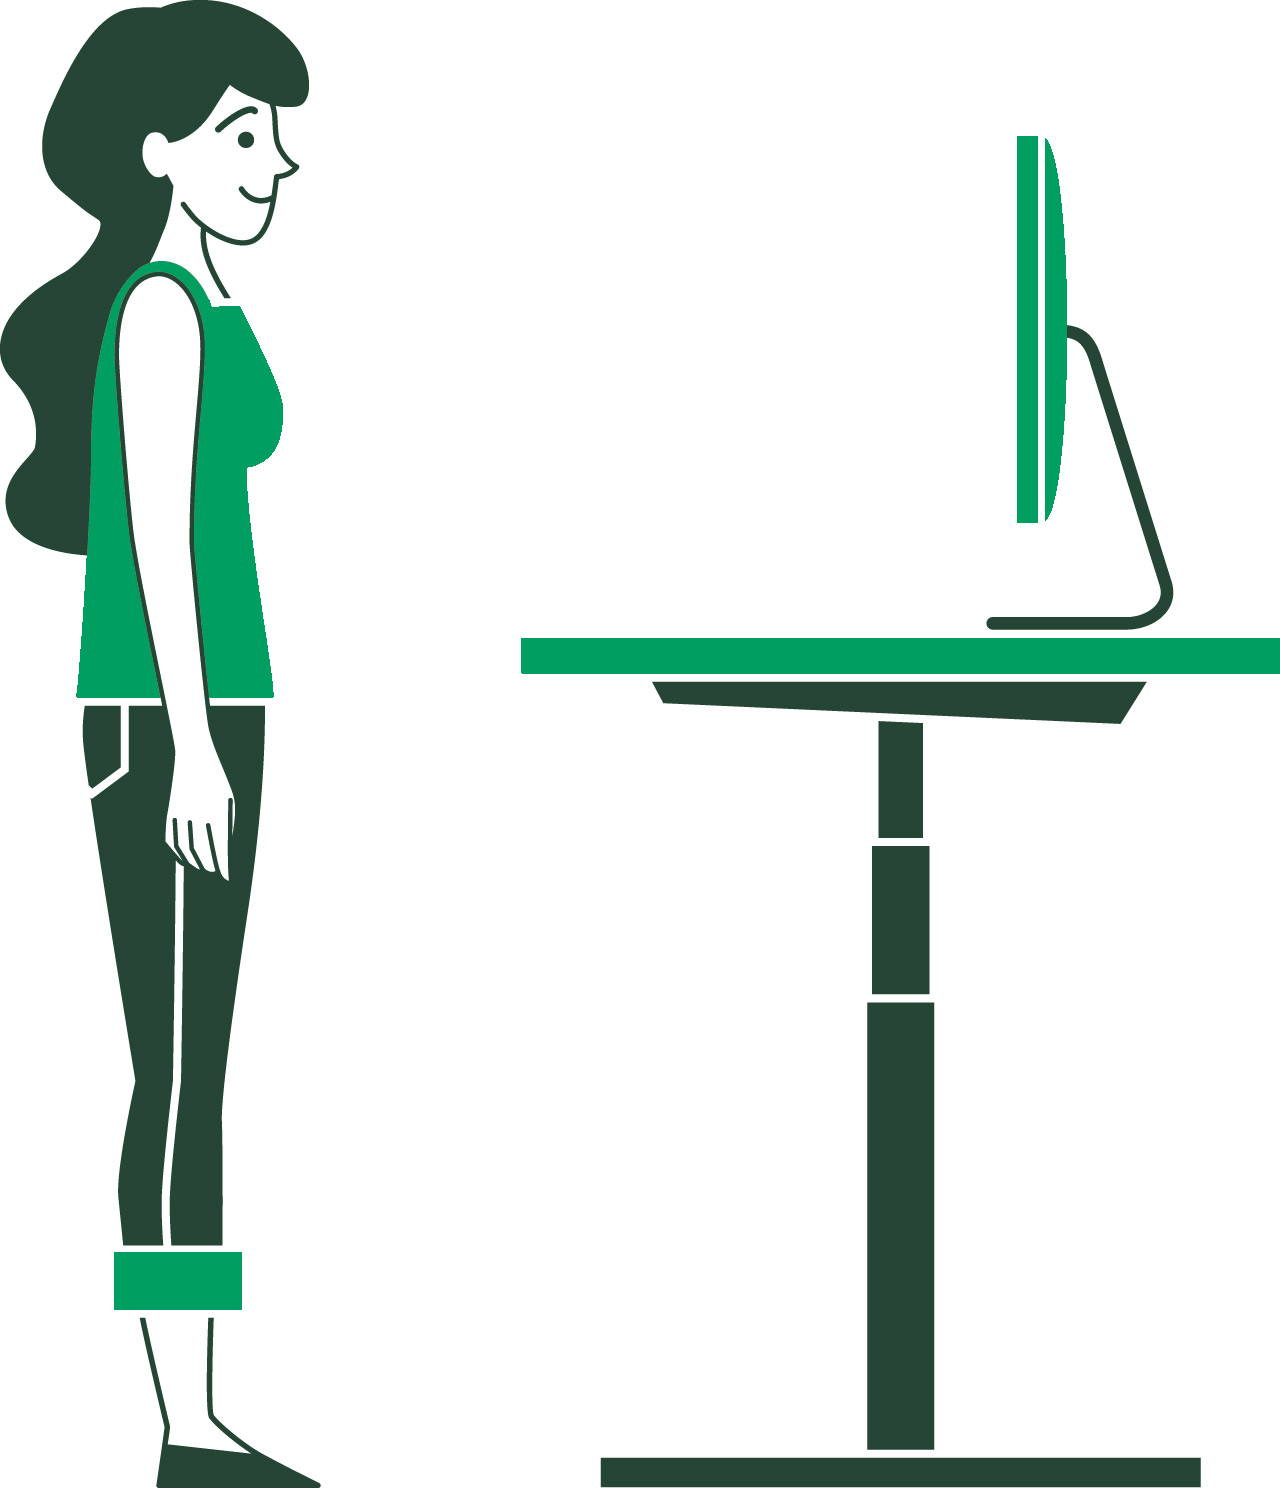 How to use my sit-stand desk